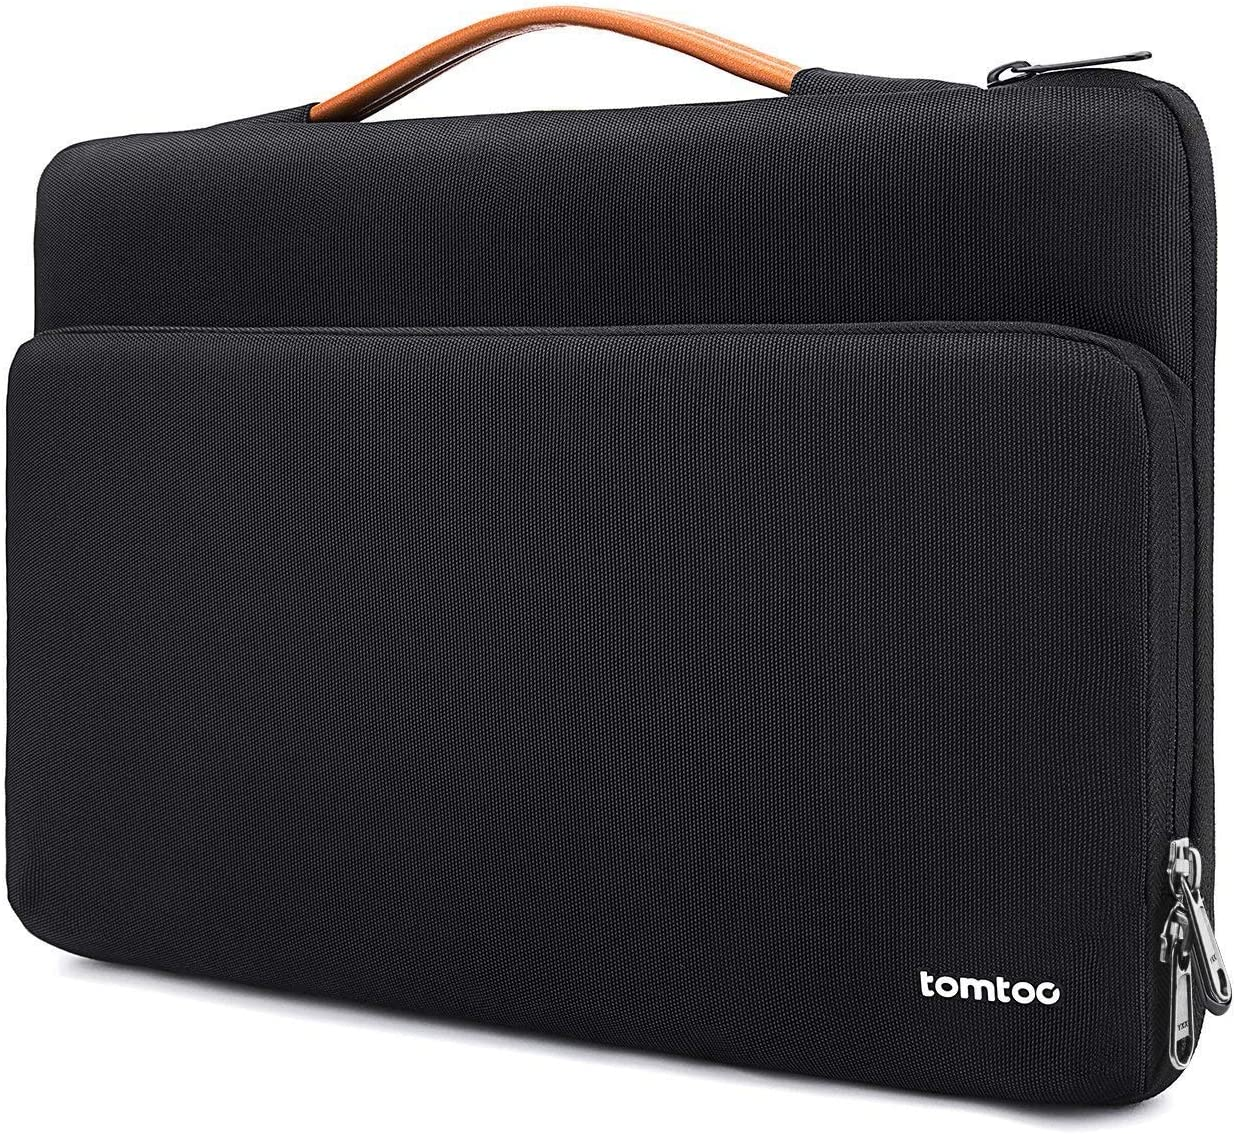 tomtoc 360 Protective Laptop Sleeve for 13.5 Inch New Microsoft Surface Book 3/2/1, Surface Laptop 3/2/1, Water-Resistant Laptop Case for 13-inch Old MacBook Air/MacBook Pro, Ultrabook Accessory Bag